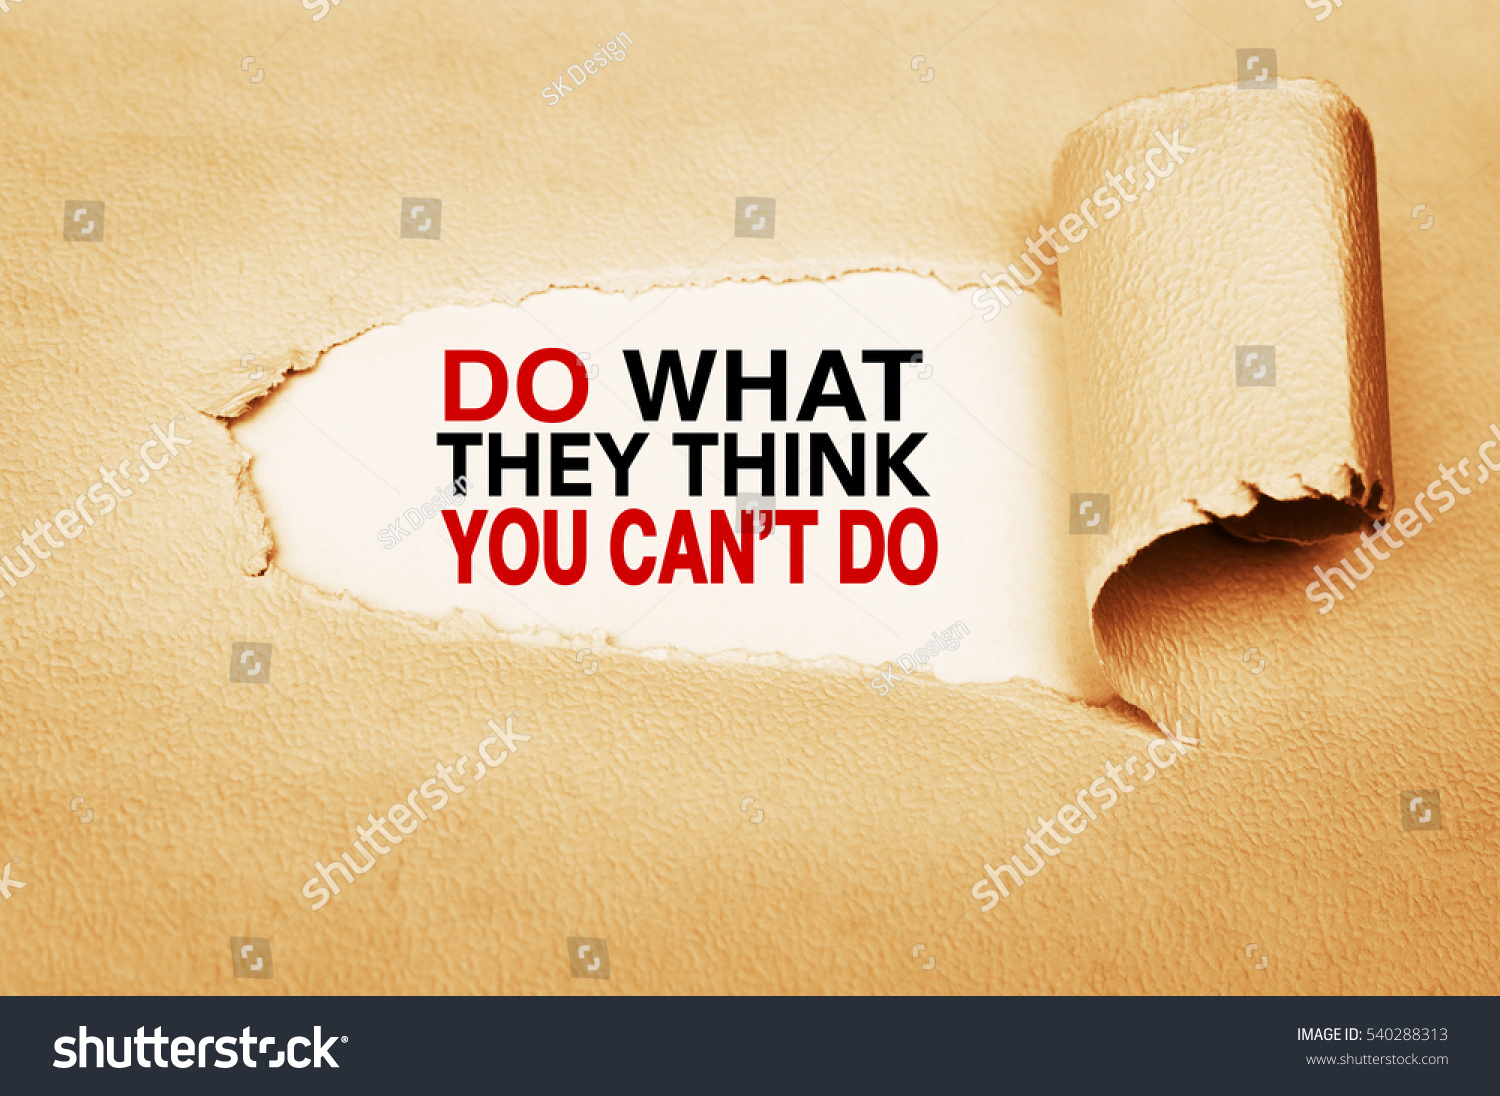 Do what they think you can't do. Motivation quote written behind a ...: https://www.shutterstock.com/image-photo/do-what-they-think-you-cant-540288313